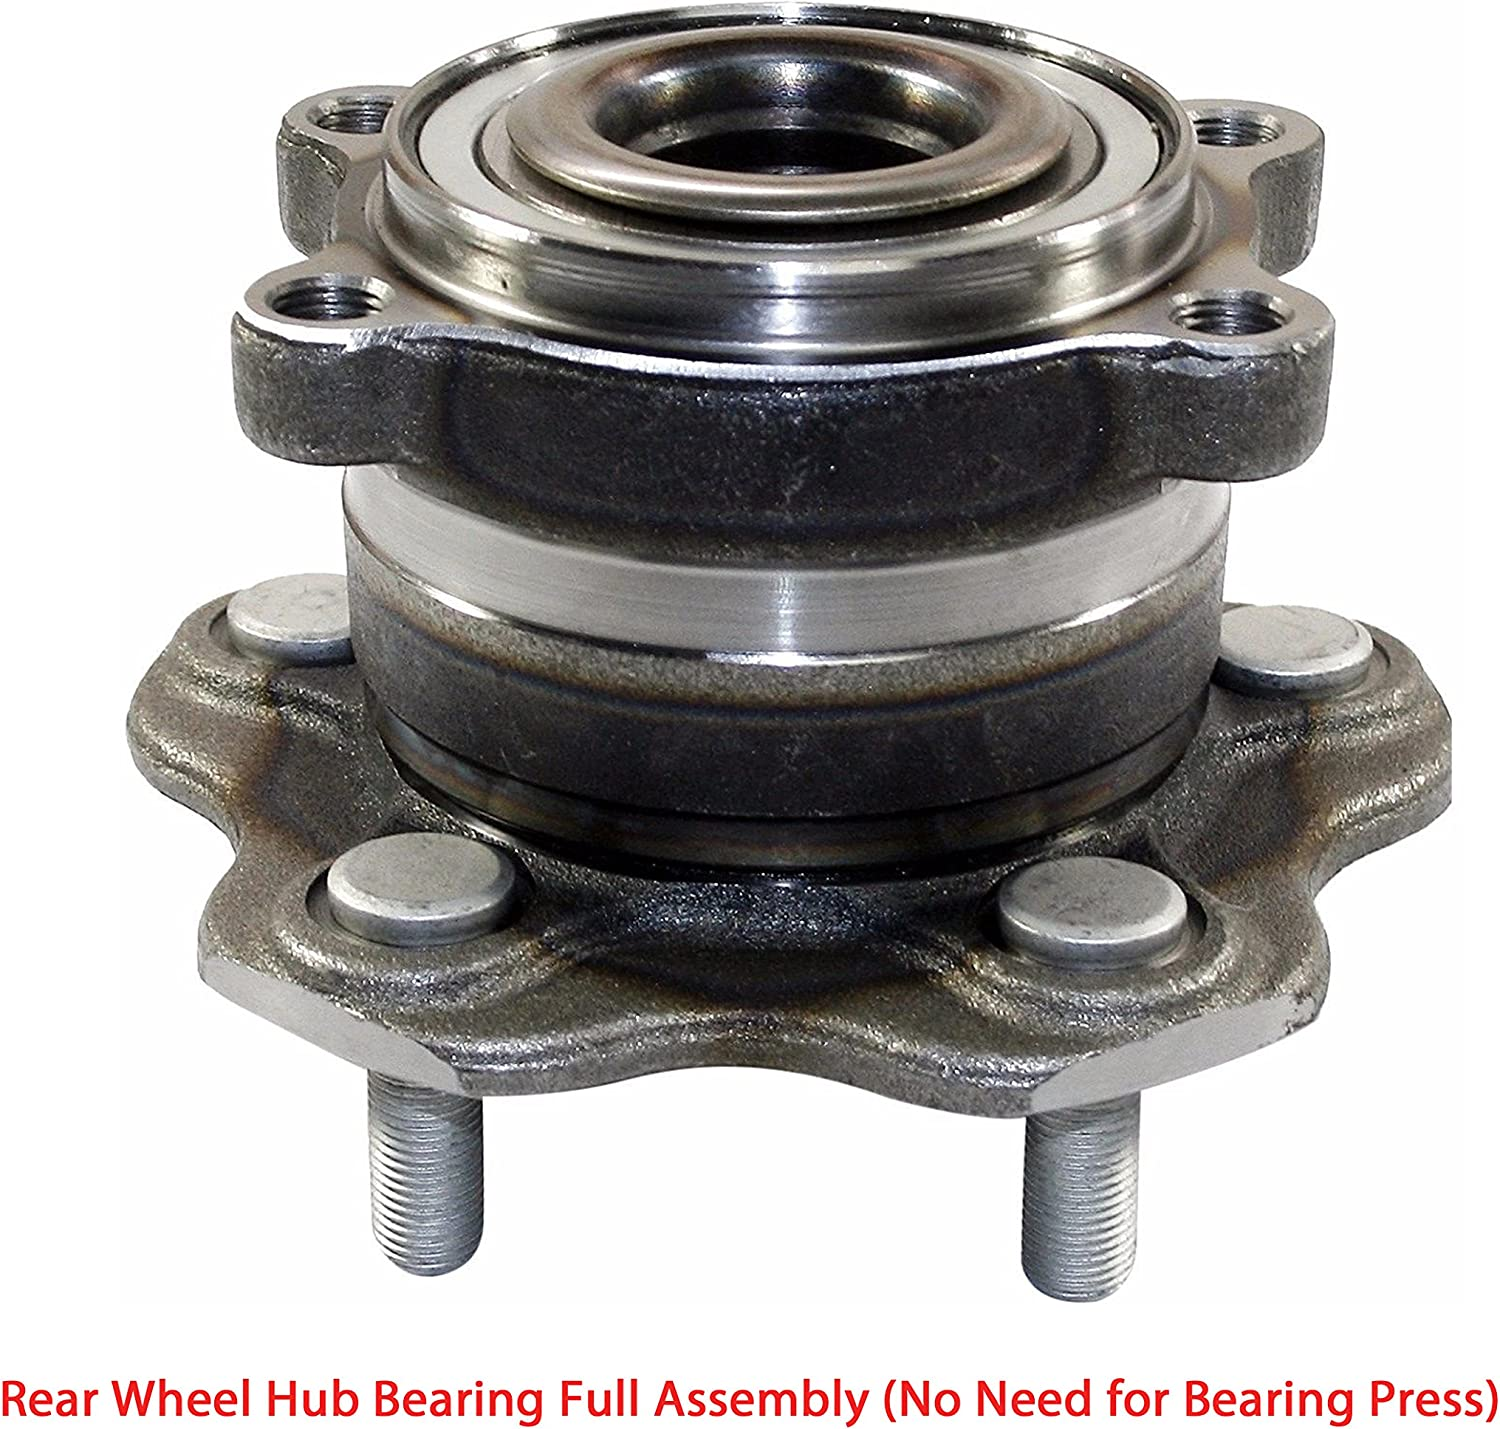 GAS Natural Rear,Front GMB 799-0003 FWD Axle Bearing and Hub Assembly-Base